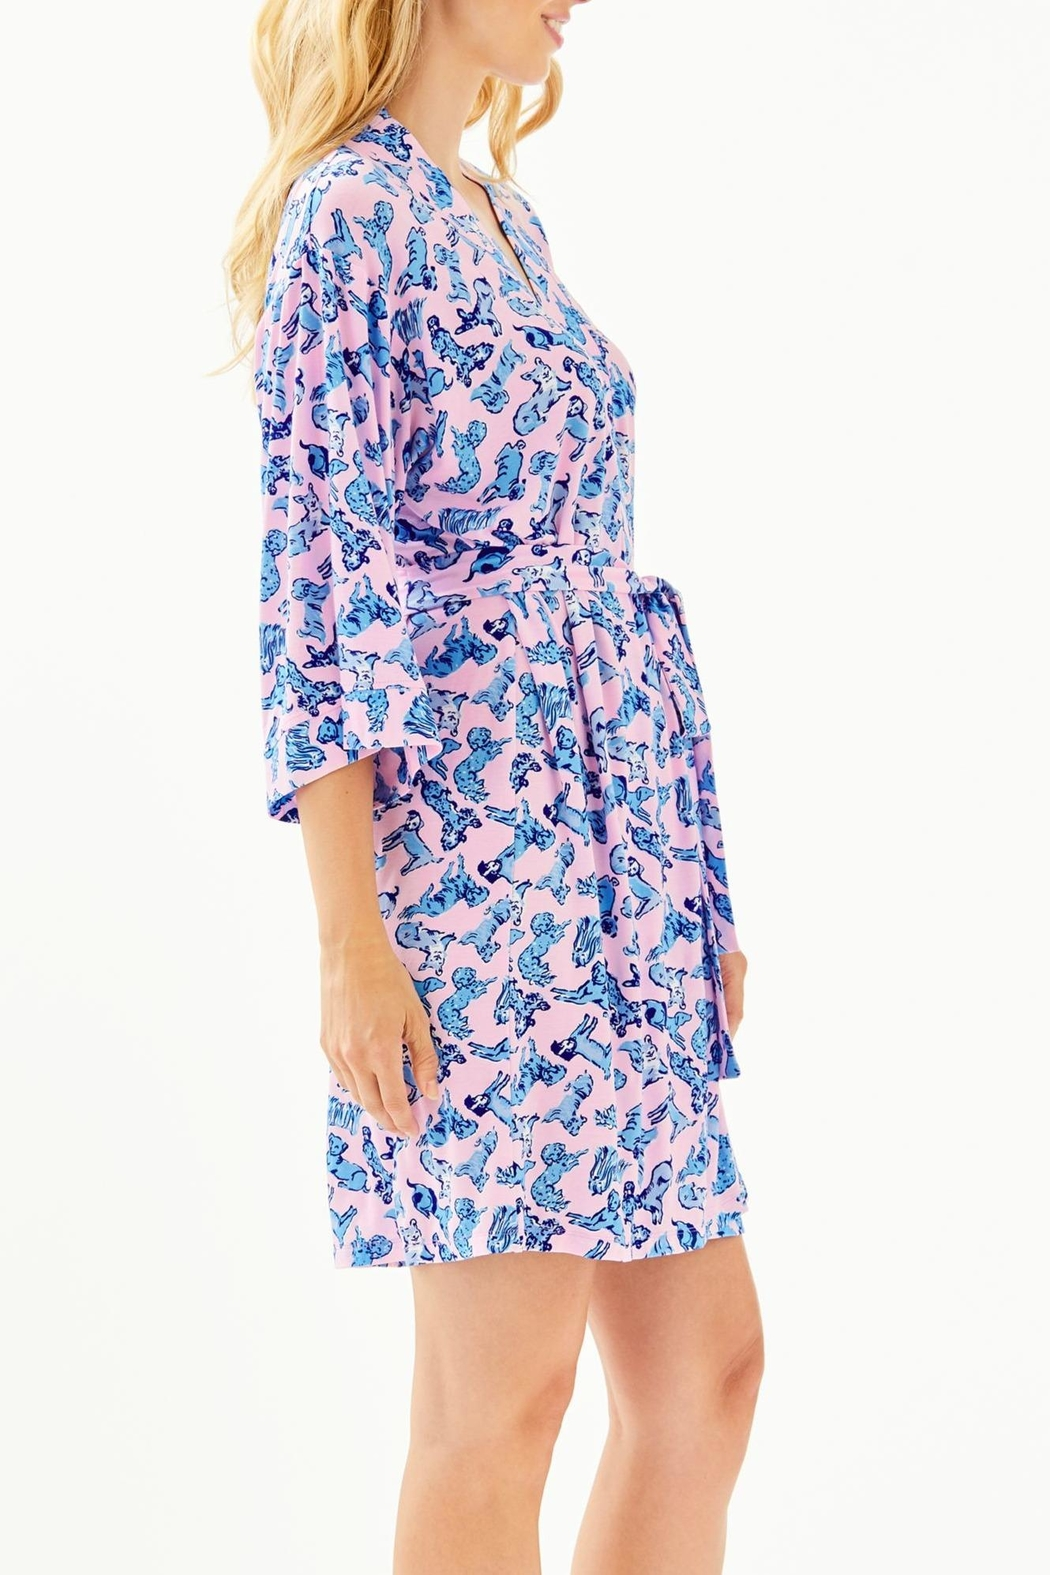 Lilly Pulitzer Lina Robe - Side Cropped Image